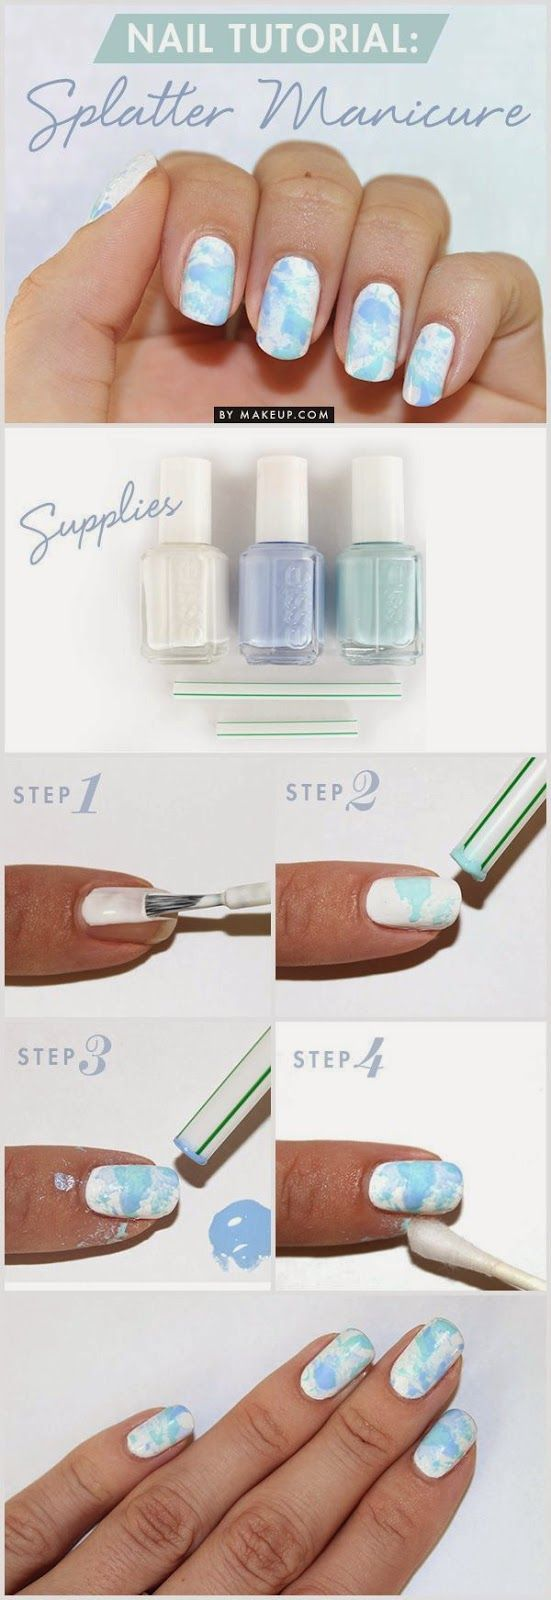 How to: Splatter Manicure   Total beauty